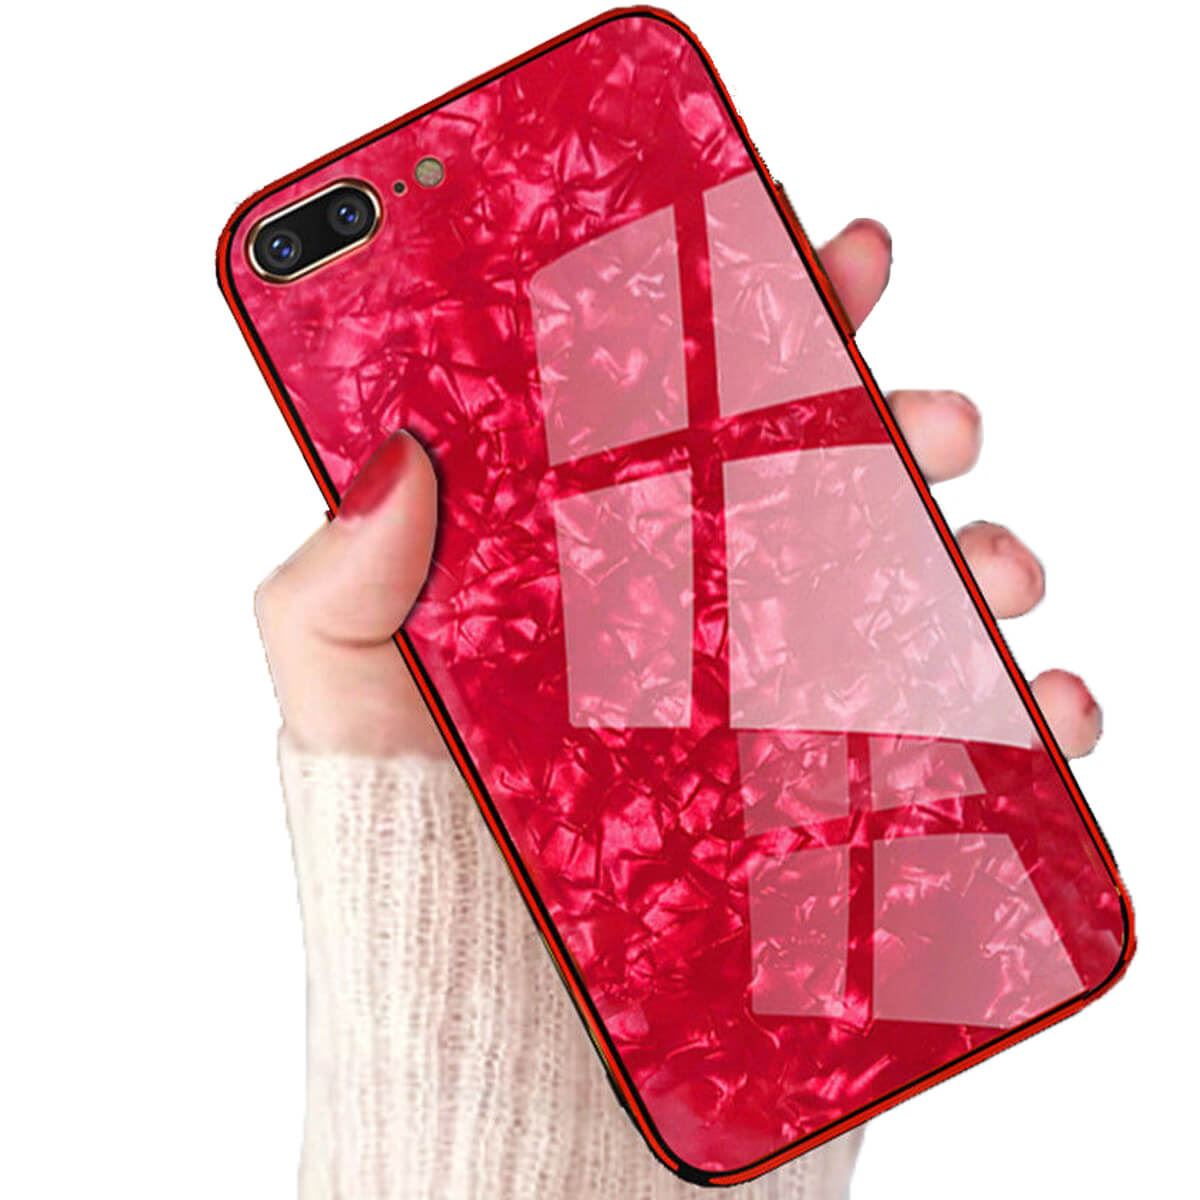 Marble-Tempered-Glass-Case-For-Apple-iPhone-X-XS-XR-Max-10-8-7-6s-6-Luxury-Cover thumbnail 30